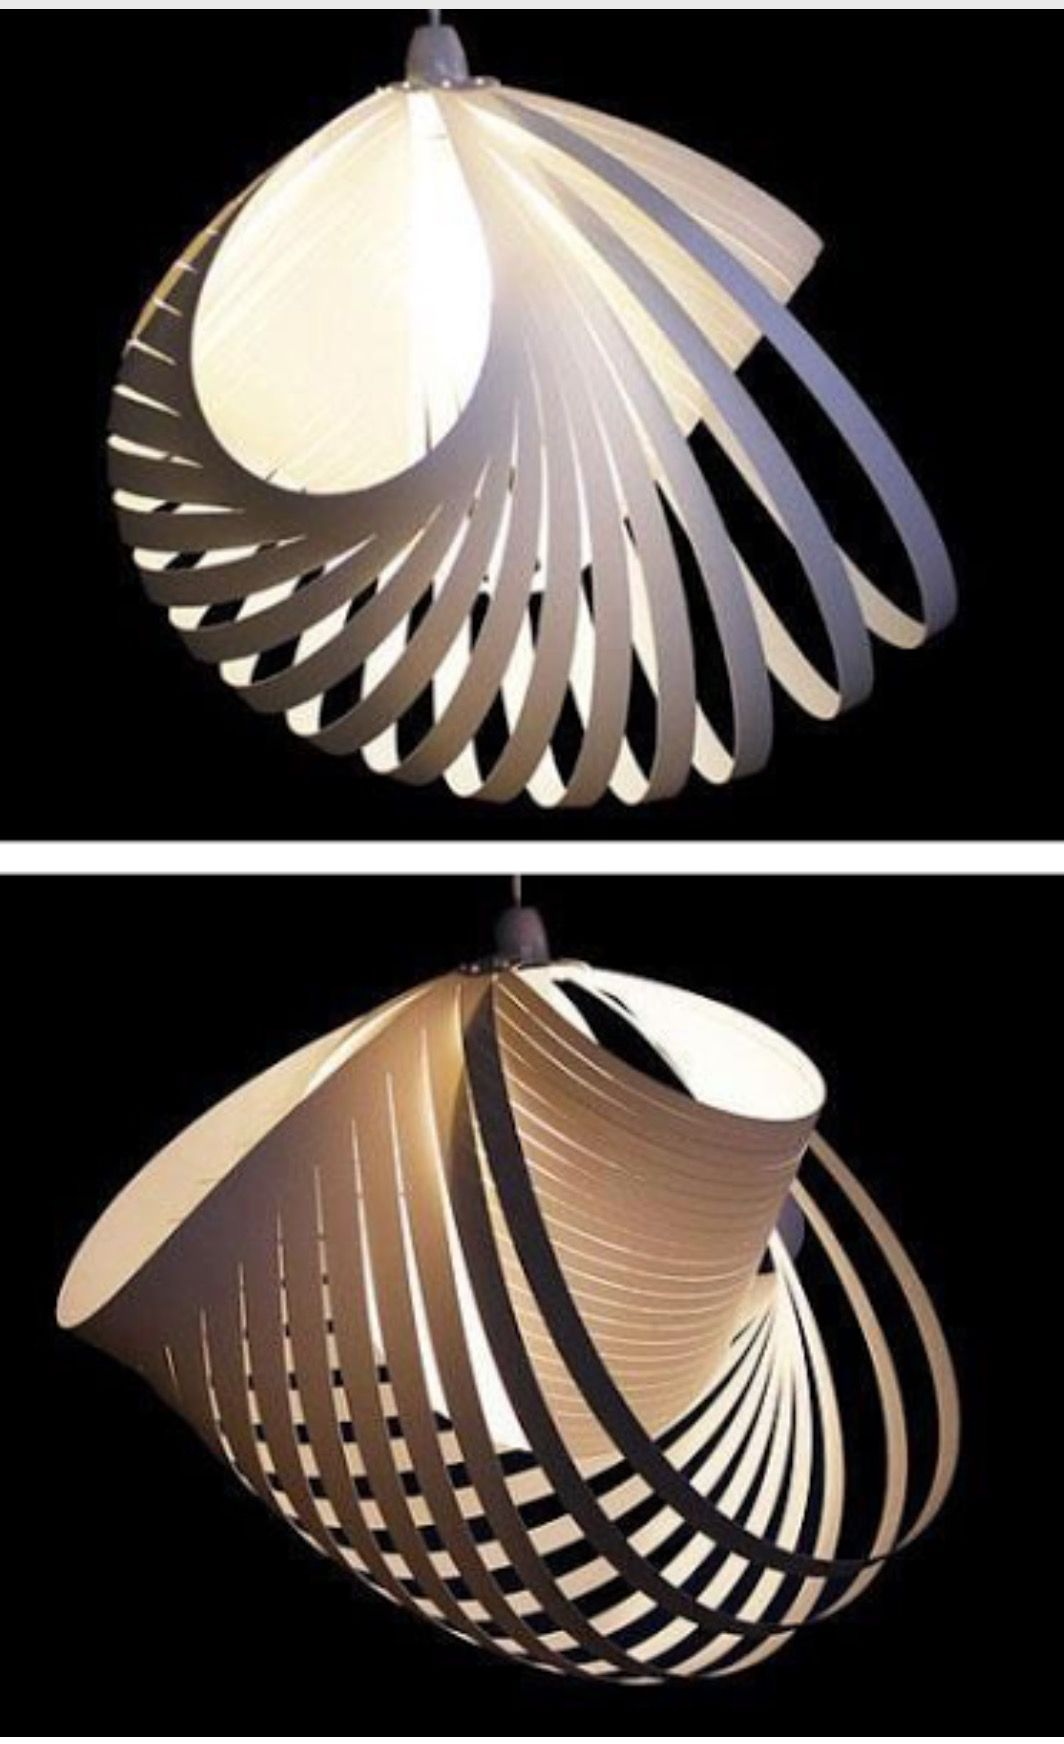 diy lampe papier lamps pinterest lampes luminaires et abat jour. Black Bedroom Furniture Sets. Home Design Ideas